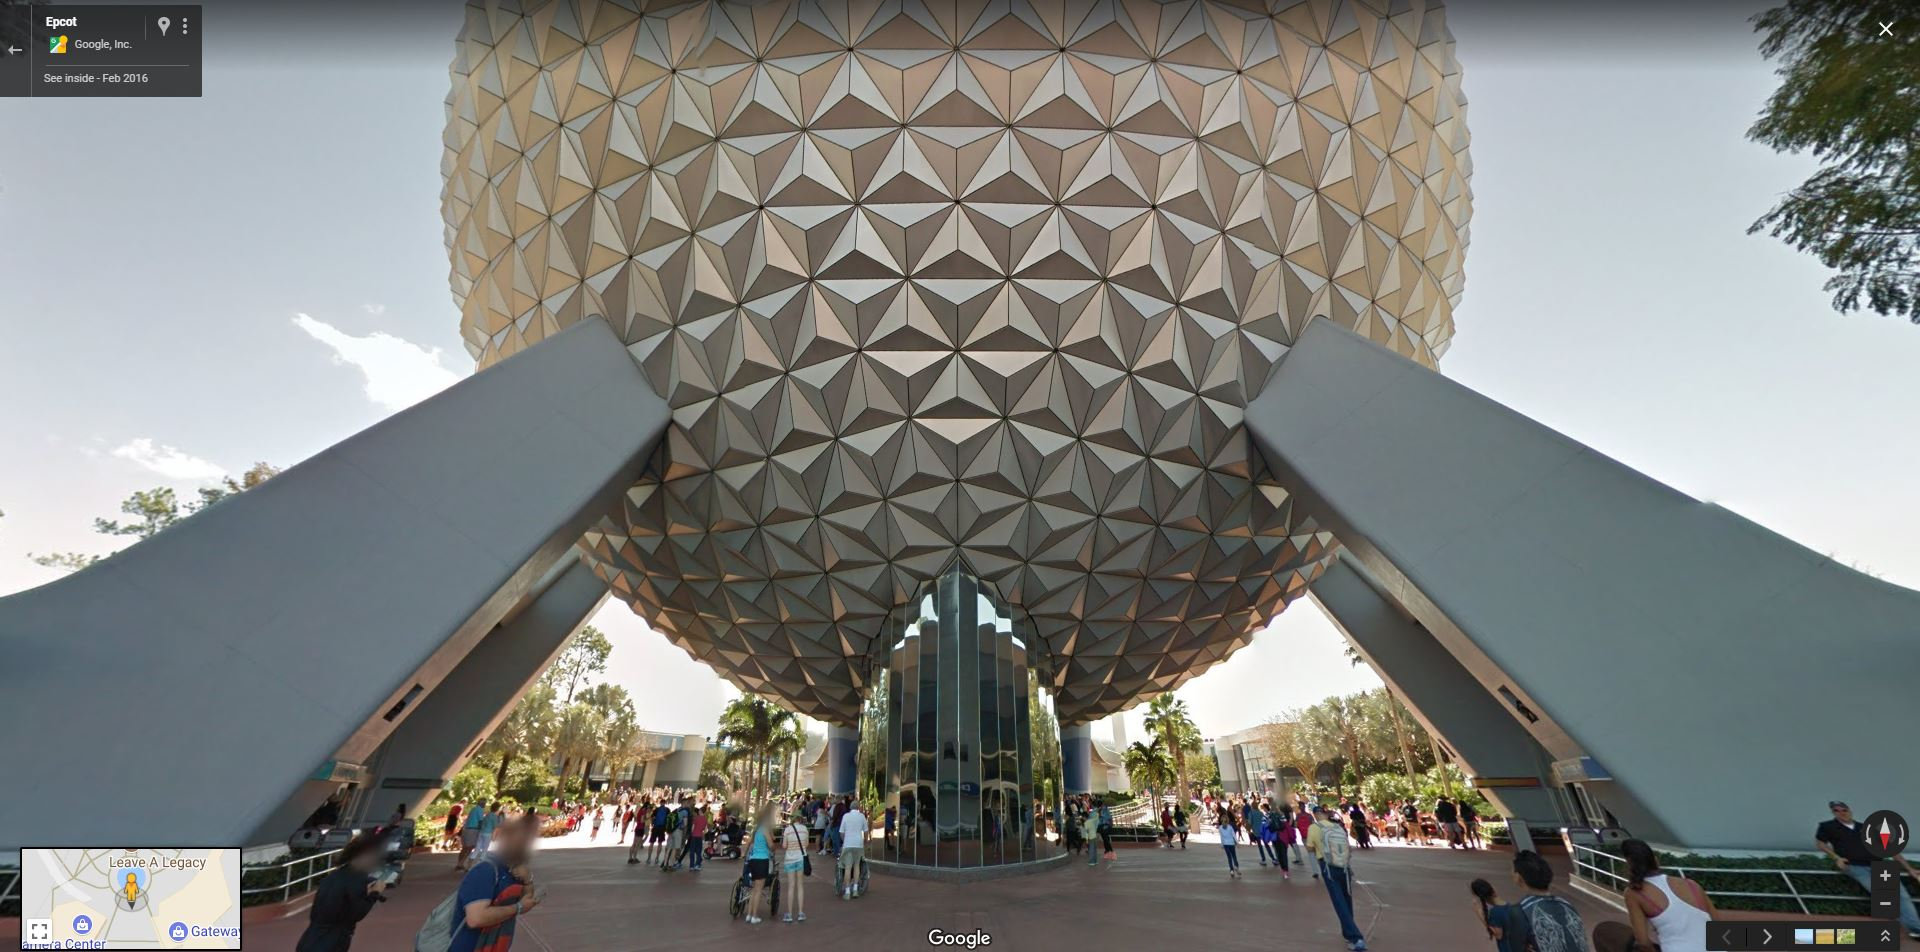 Google Street View of Spaceship Earth at Epcot